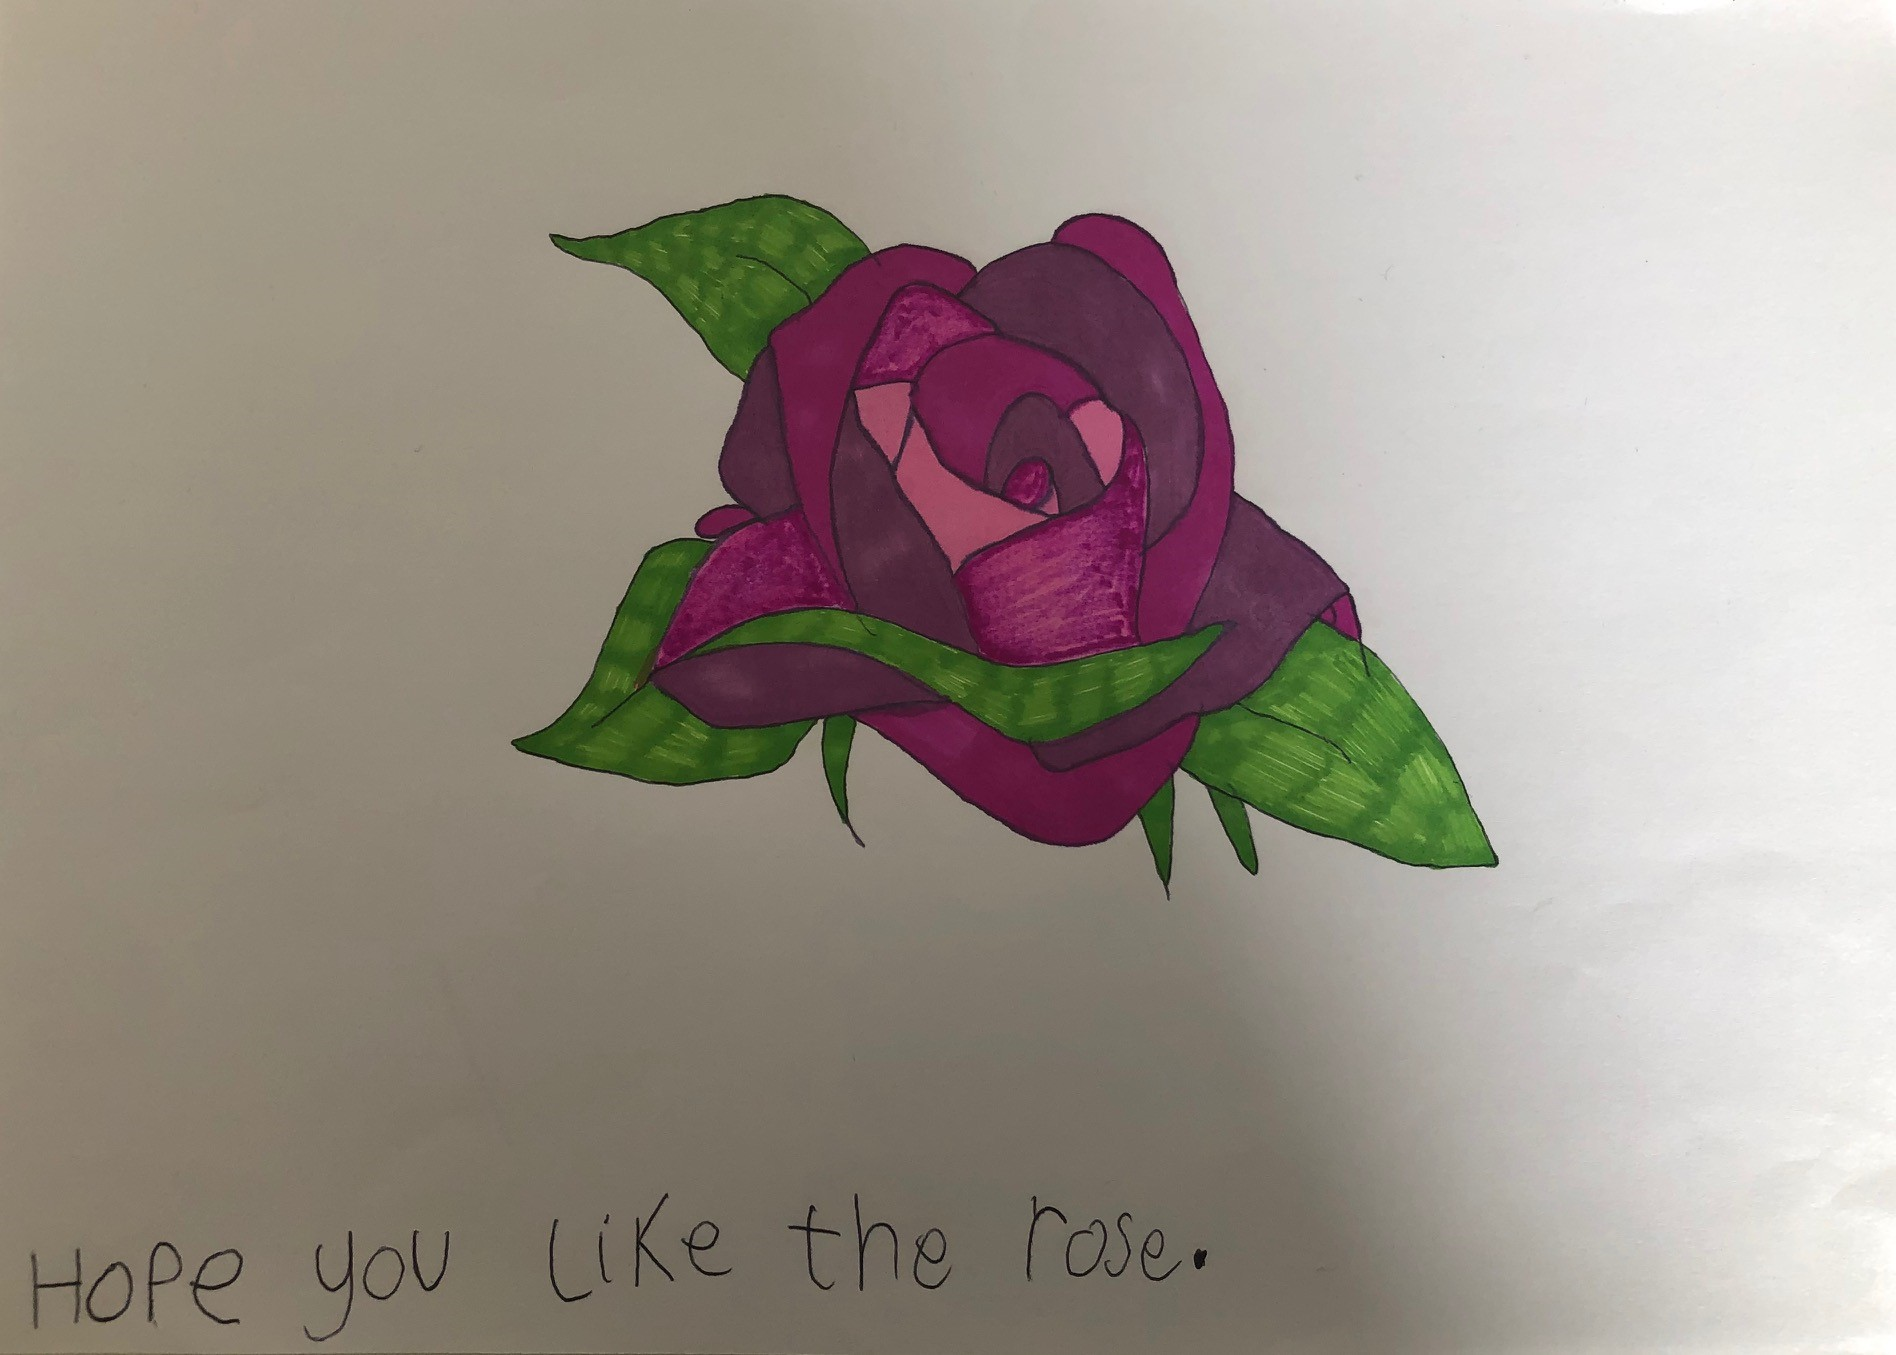 Hope you like my rose - by 9 year old